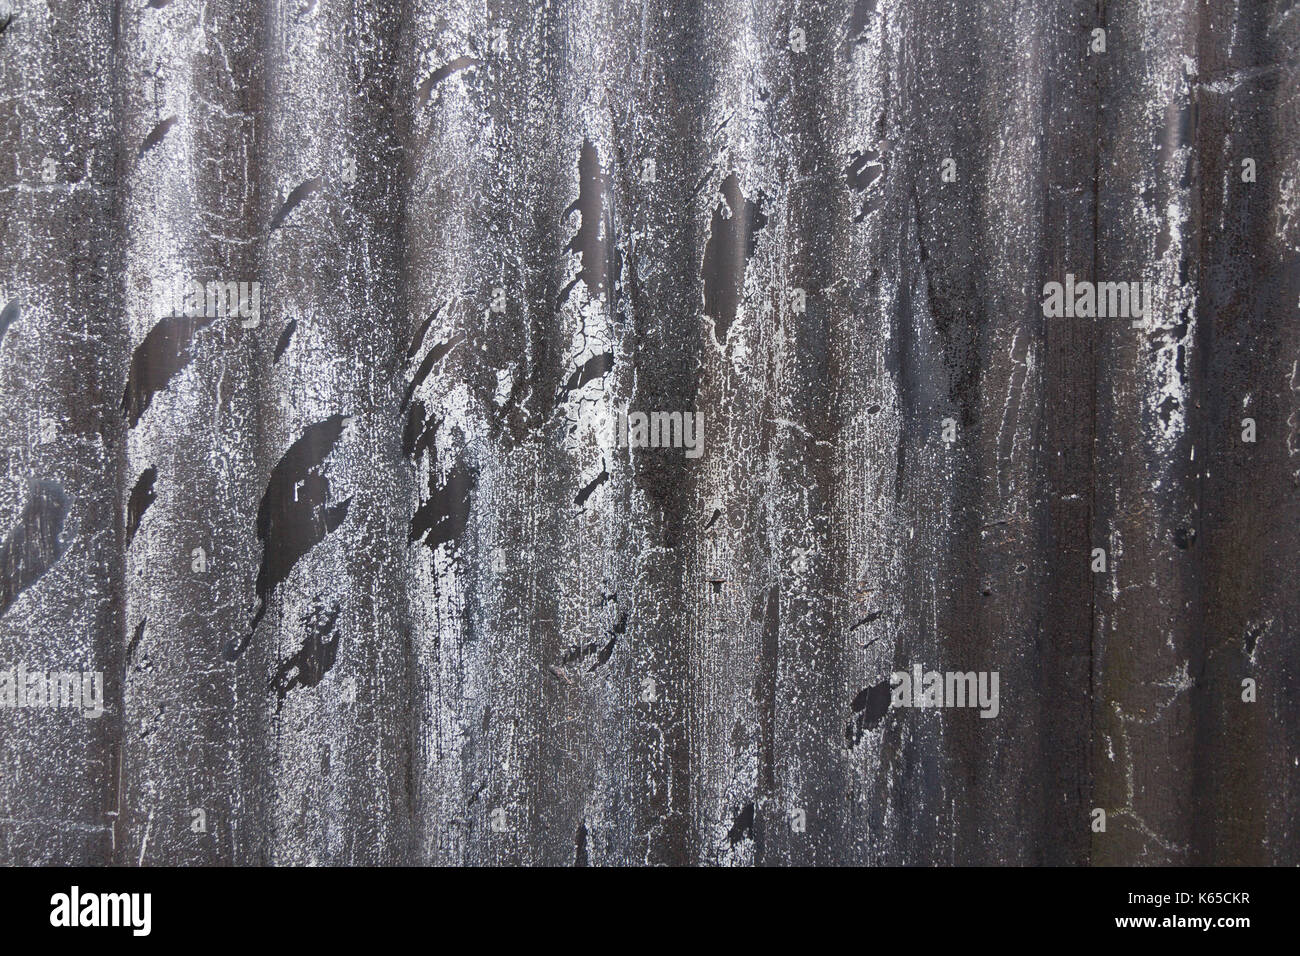 Farm building corrugated sheet metal panel texture Stock Photo